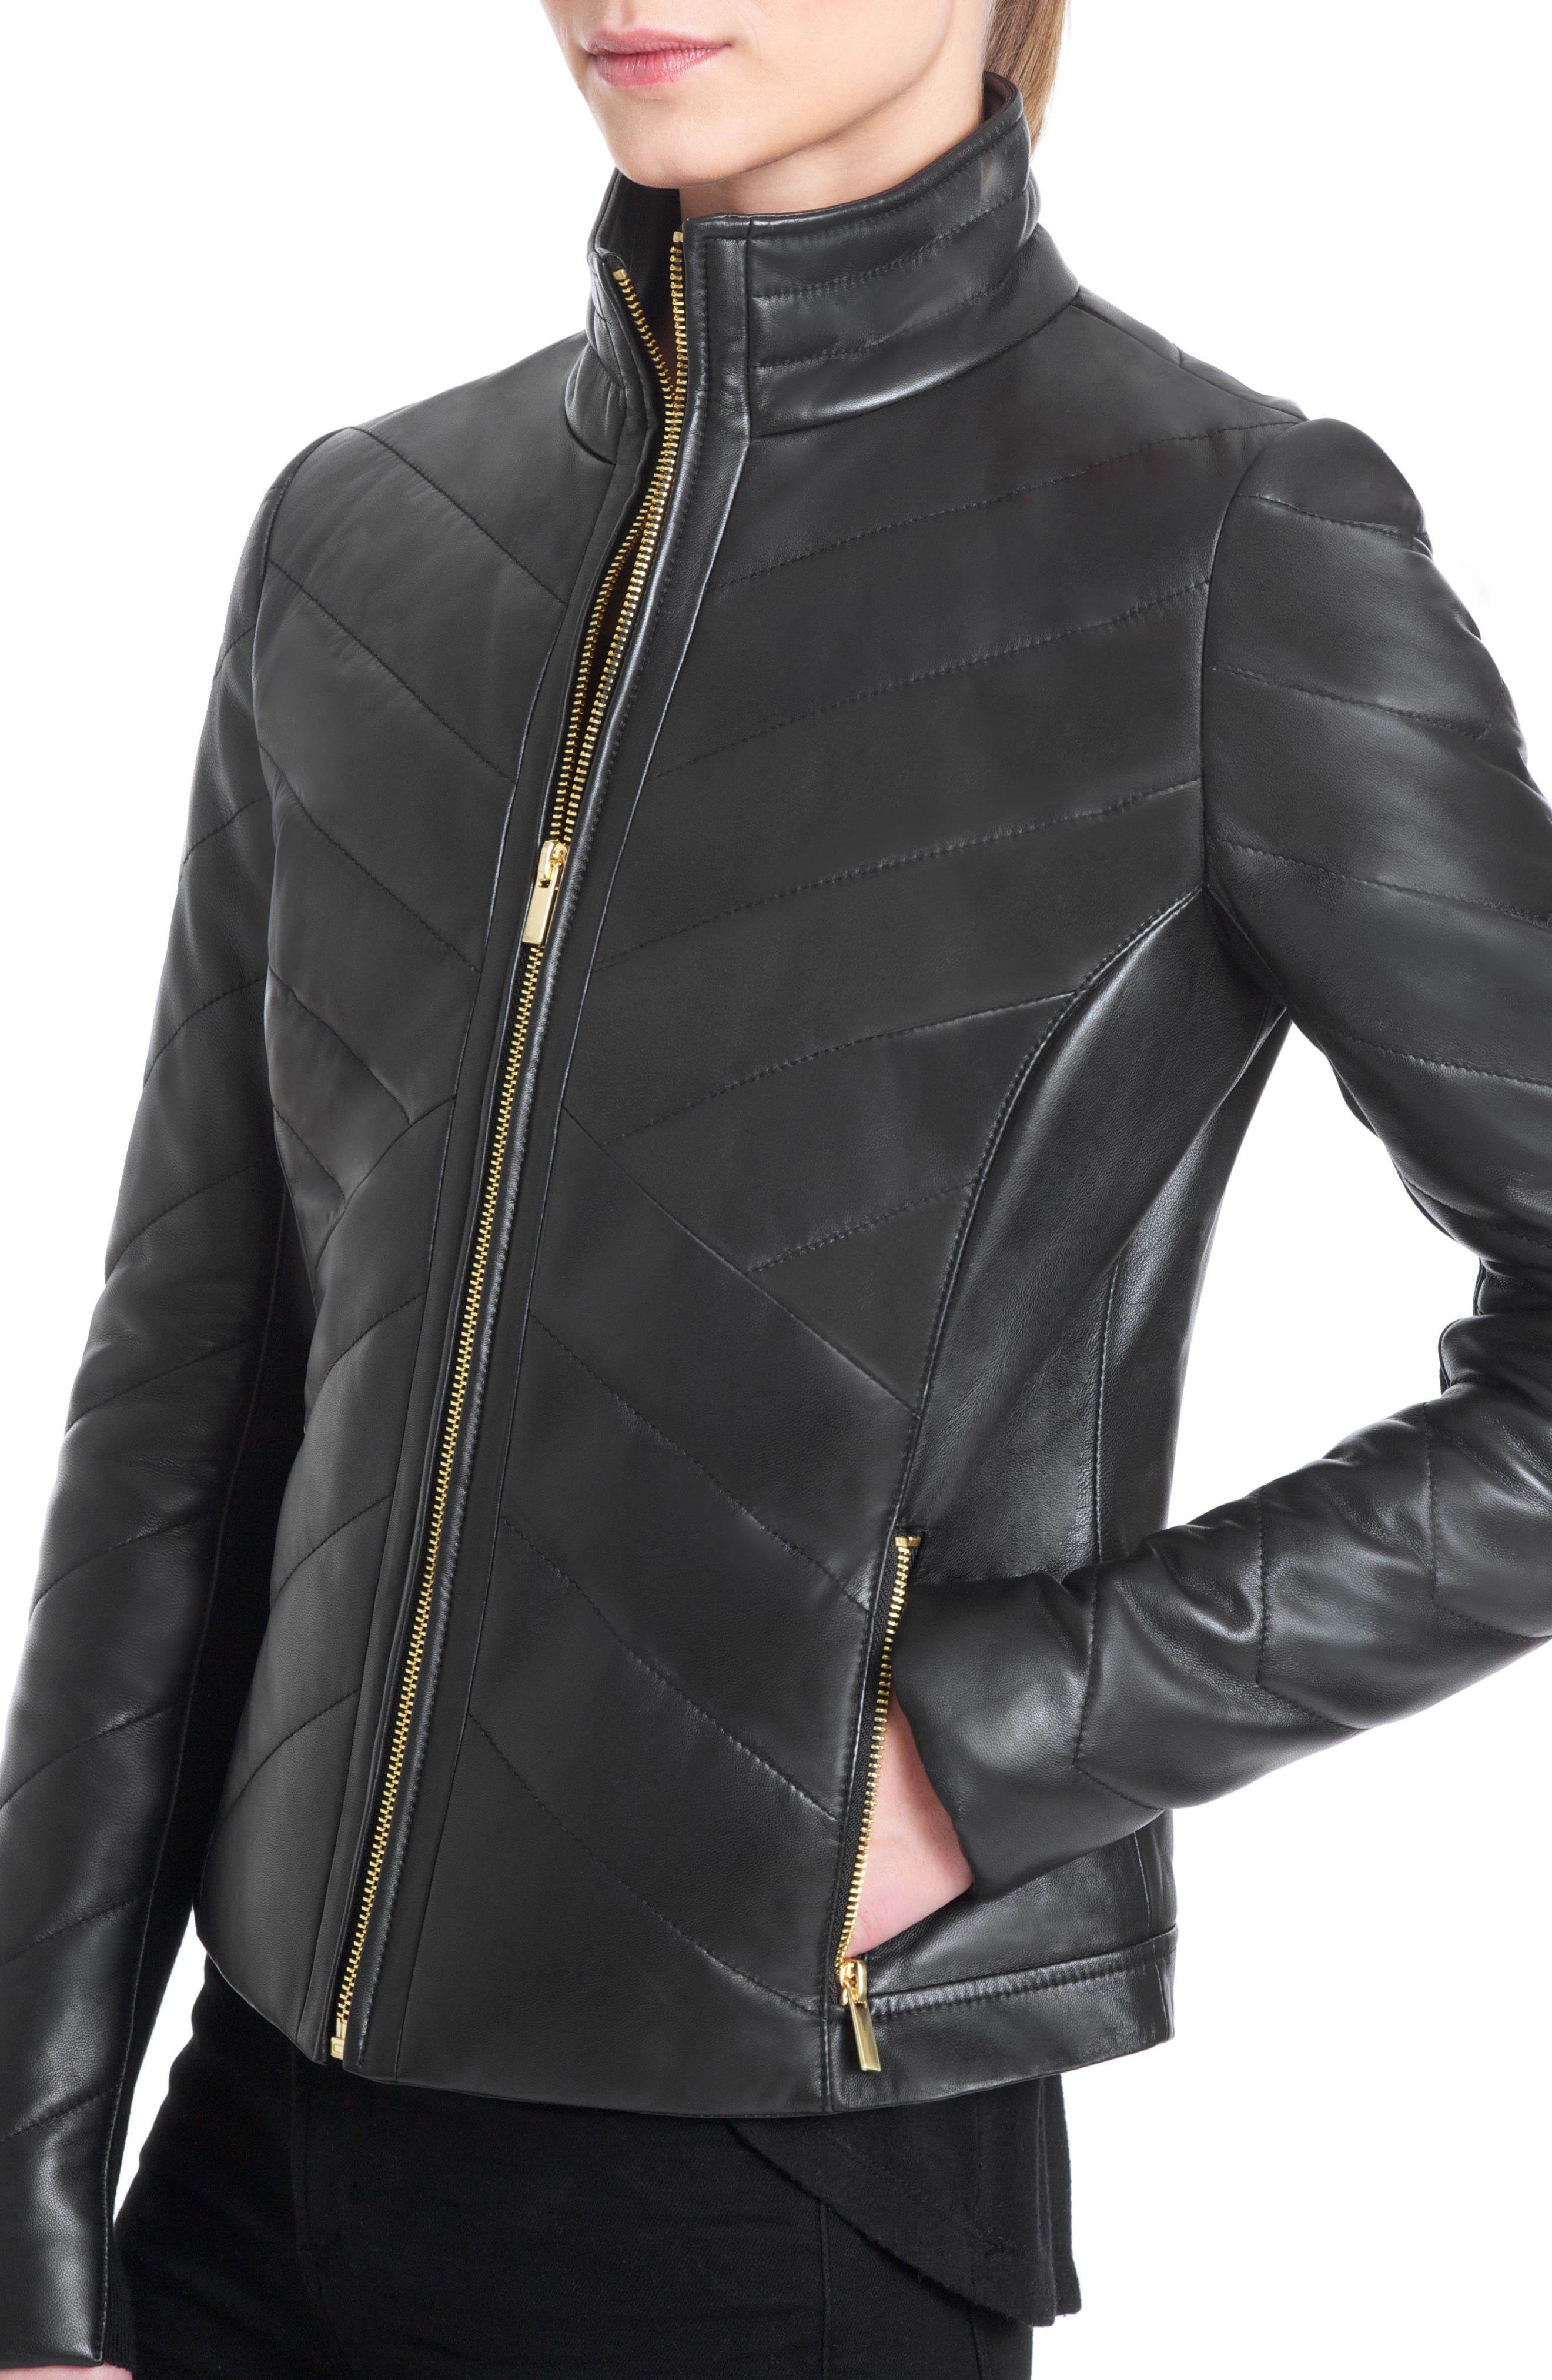 Badgley Mischka Eloise Quilted Leather Moto Jacket,                             Alternate thumbnail 3, color,                             001